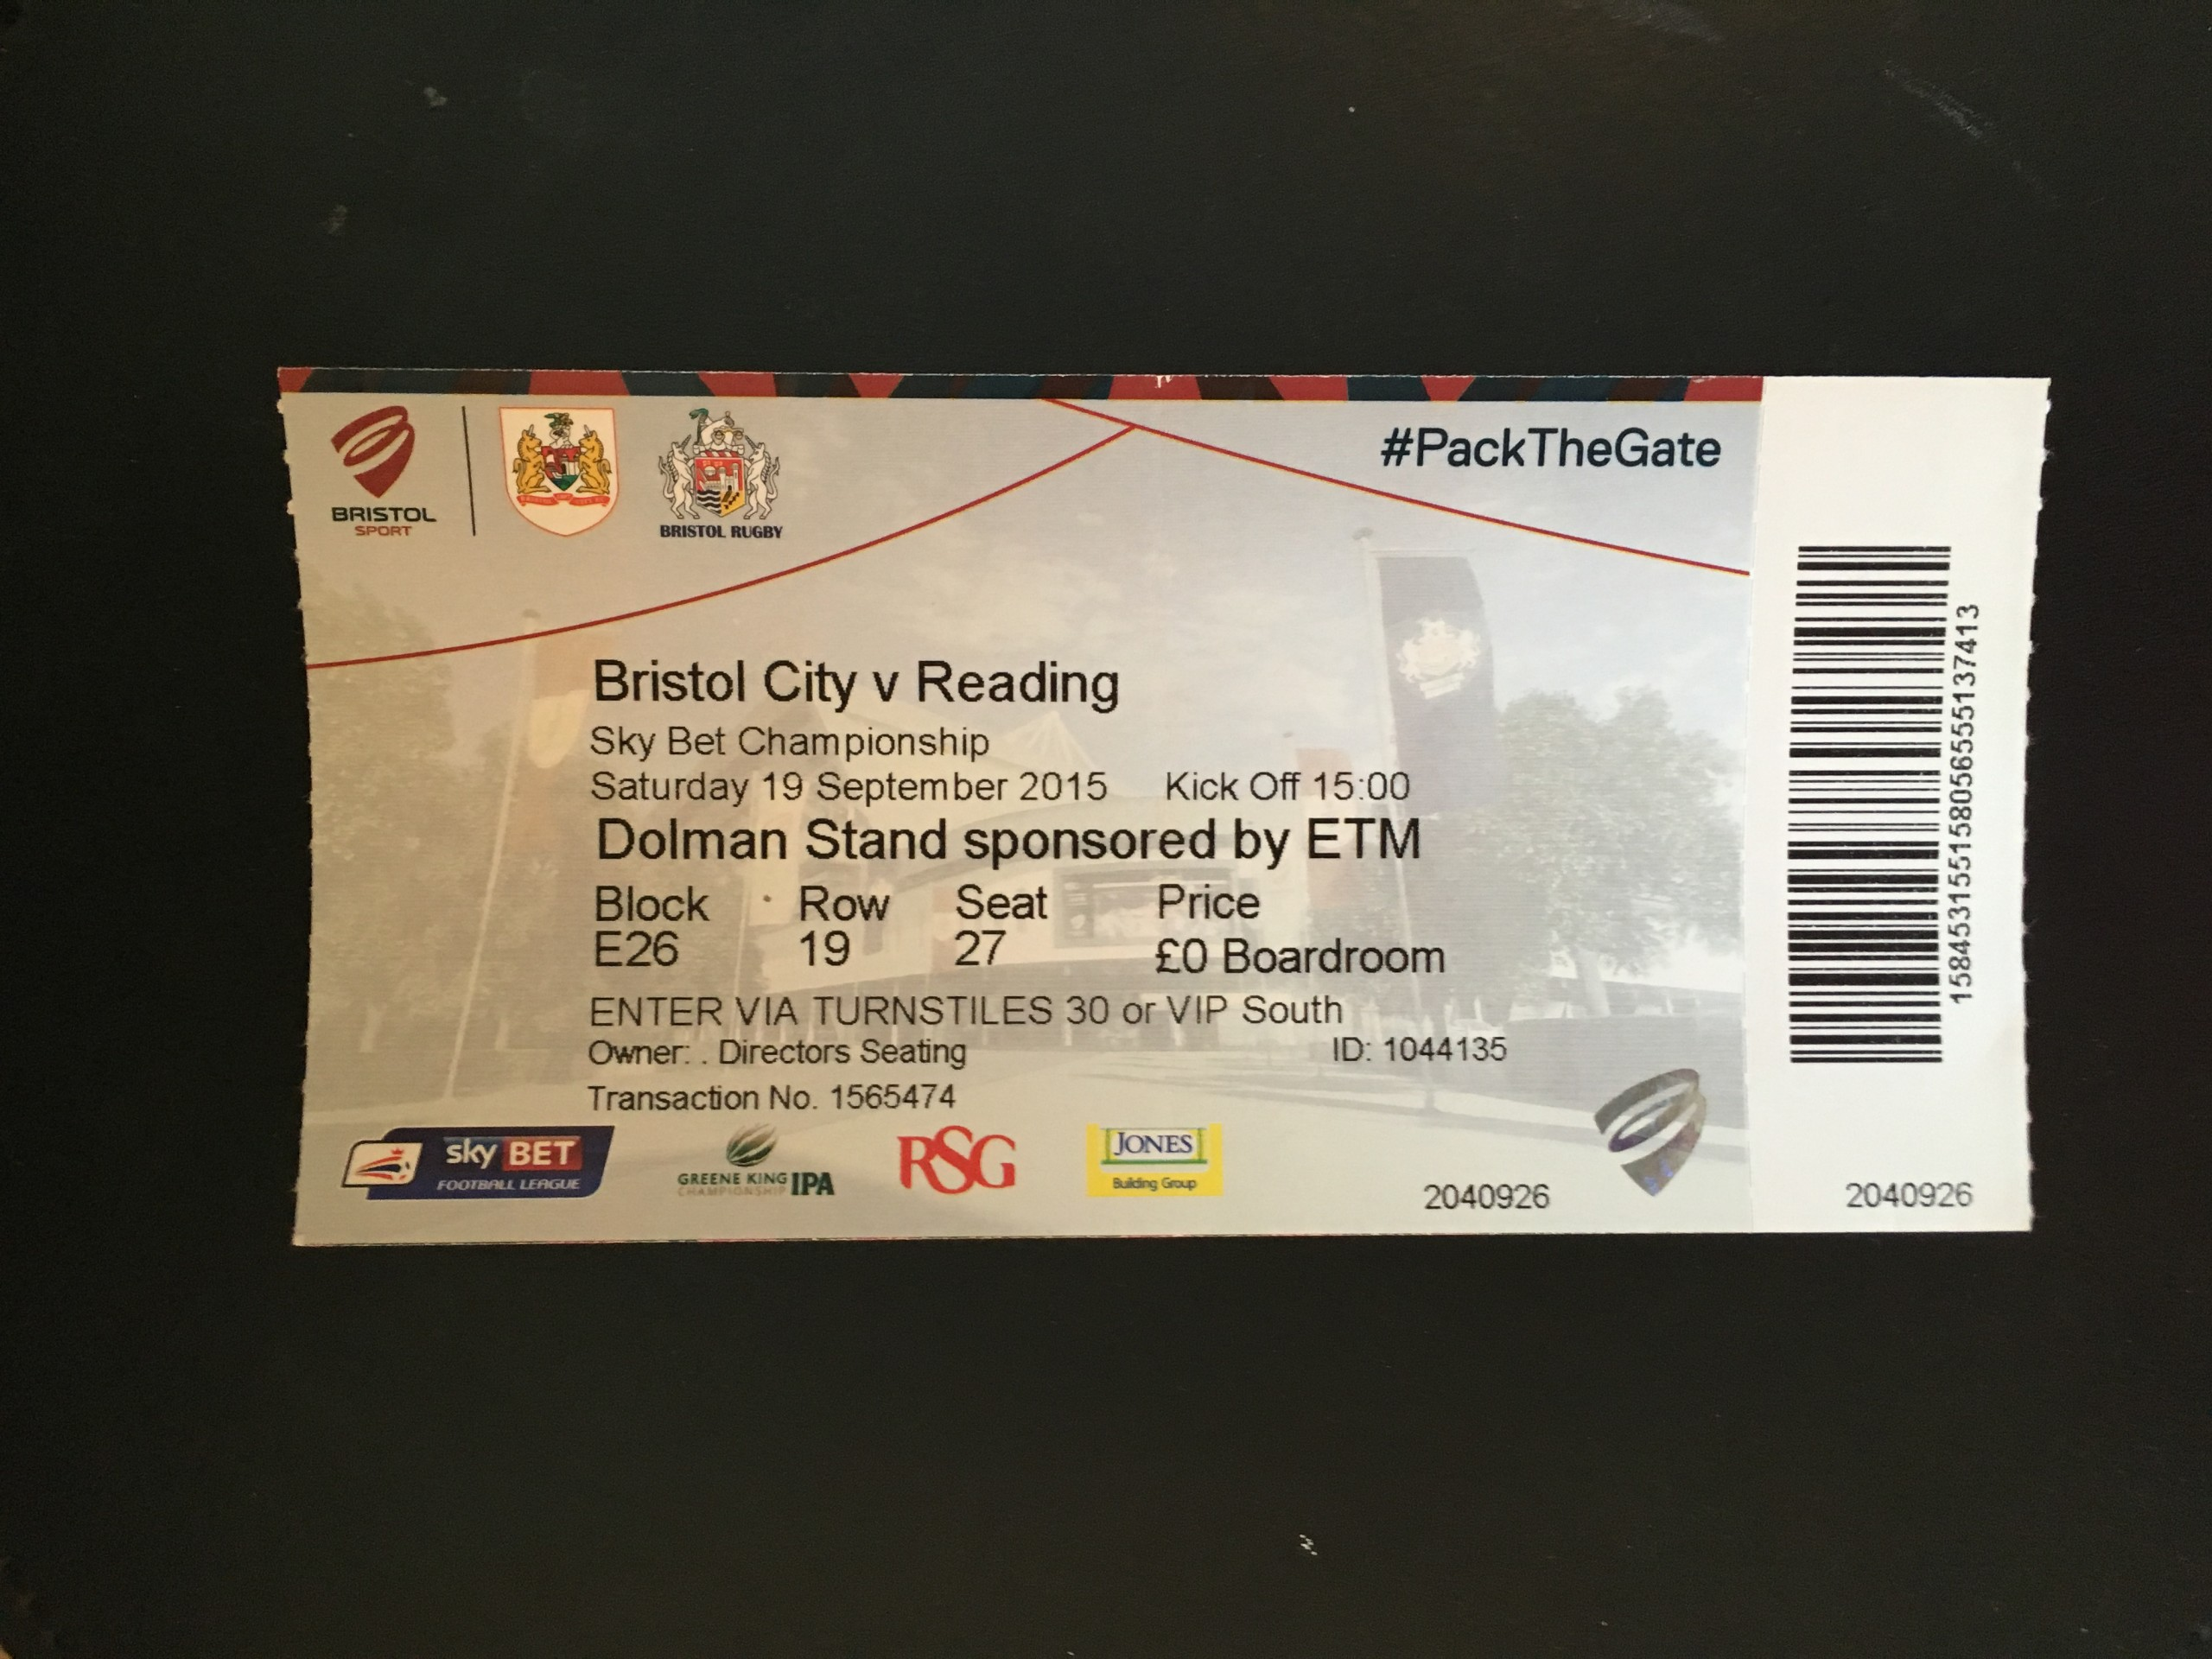 Bristol City v Reading 19-09-2015 Ticket